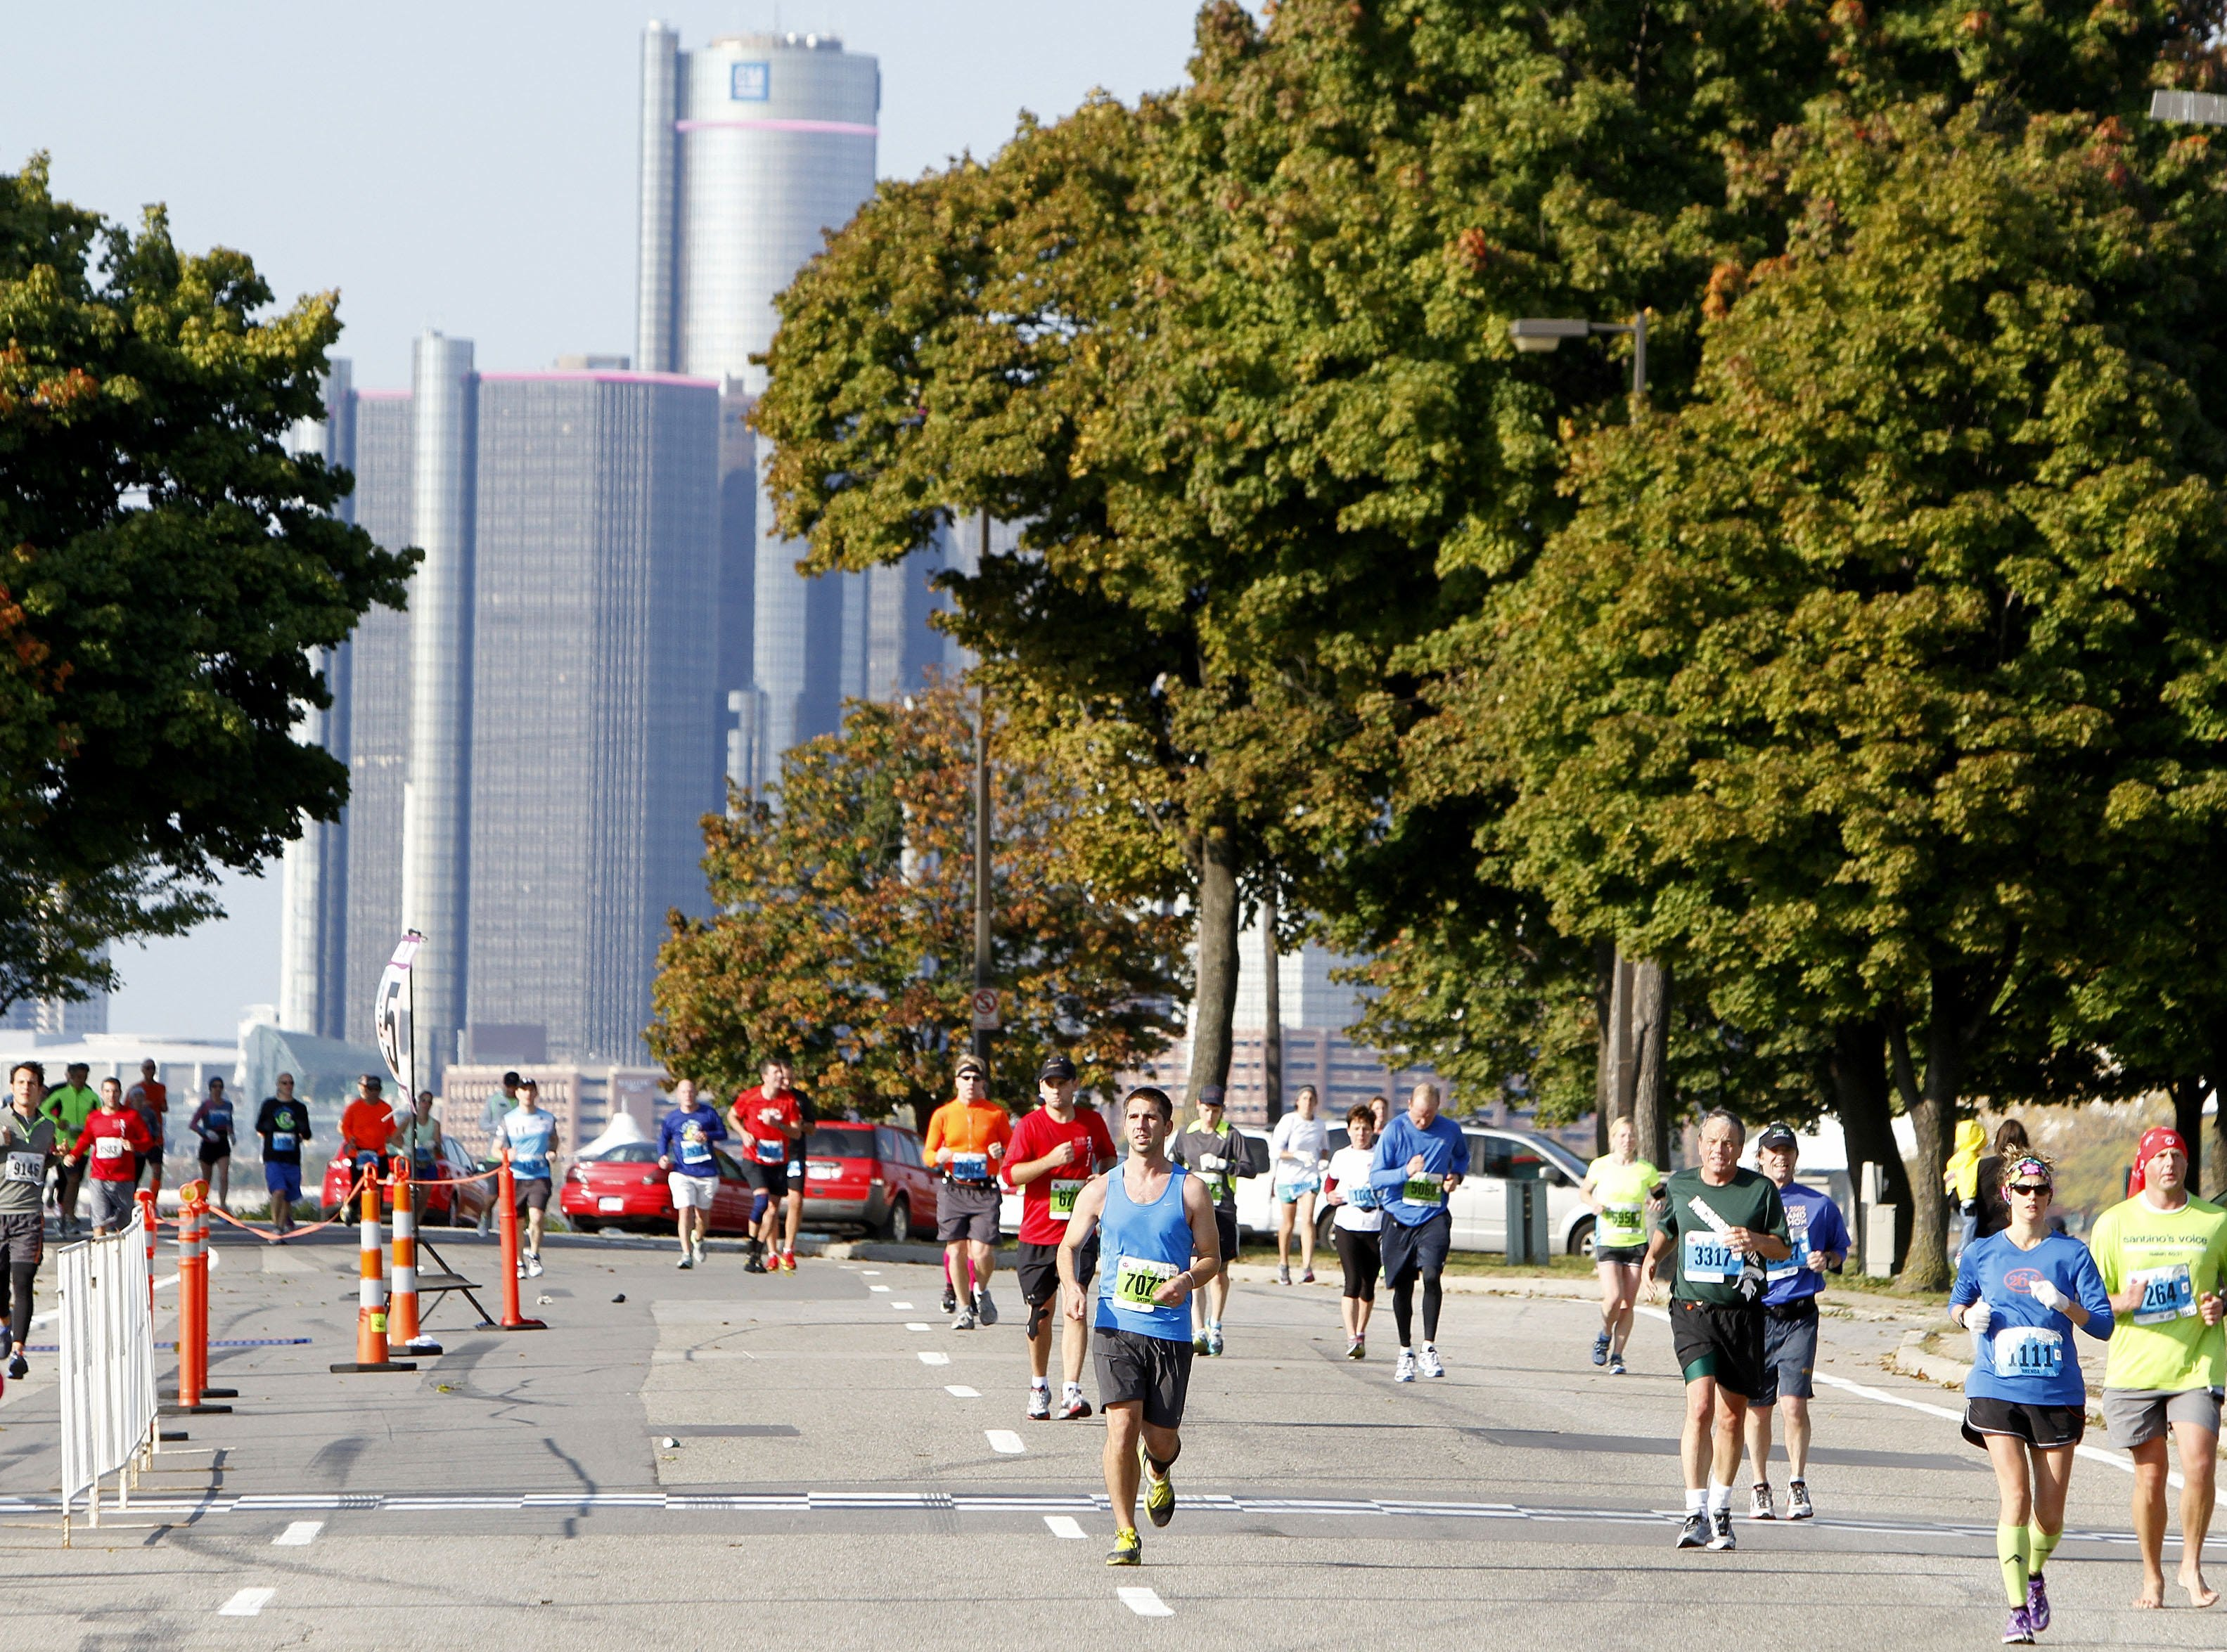 Runners make their way around Belle Isle with the Renaissance Center in the background during the 36th Annual Detroit Free Press/Talmer Bank Marathon in Detroit on Sunday, Oct. 20, 2013.